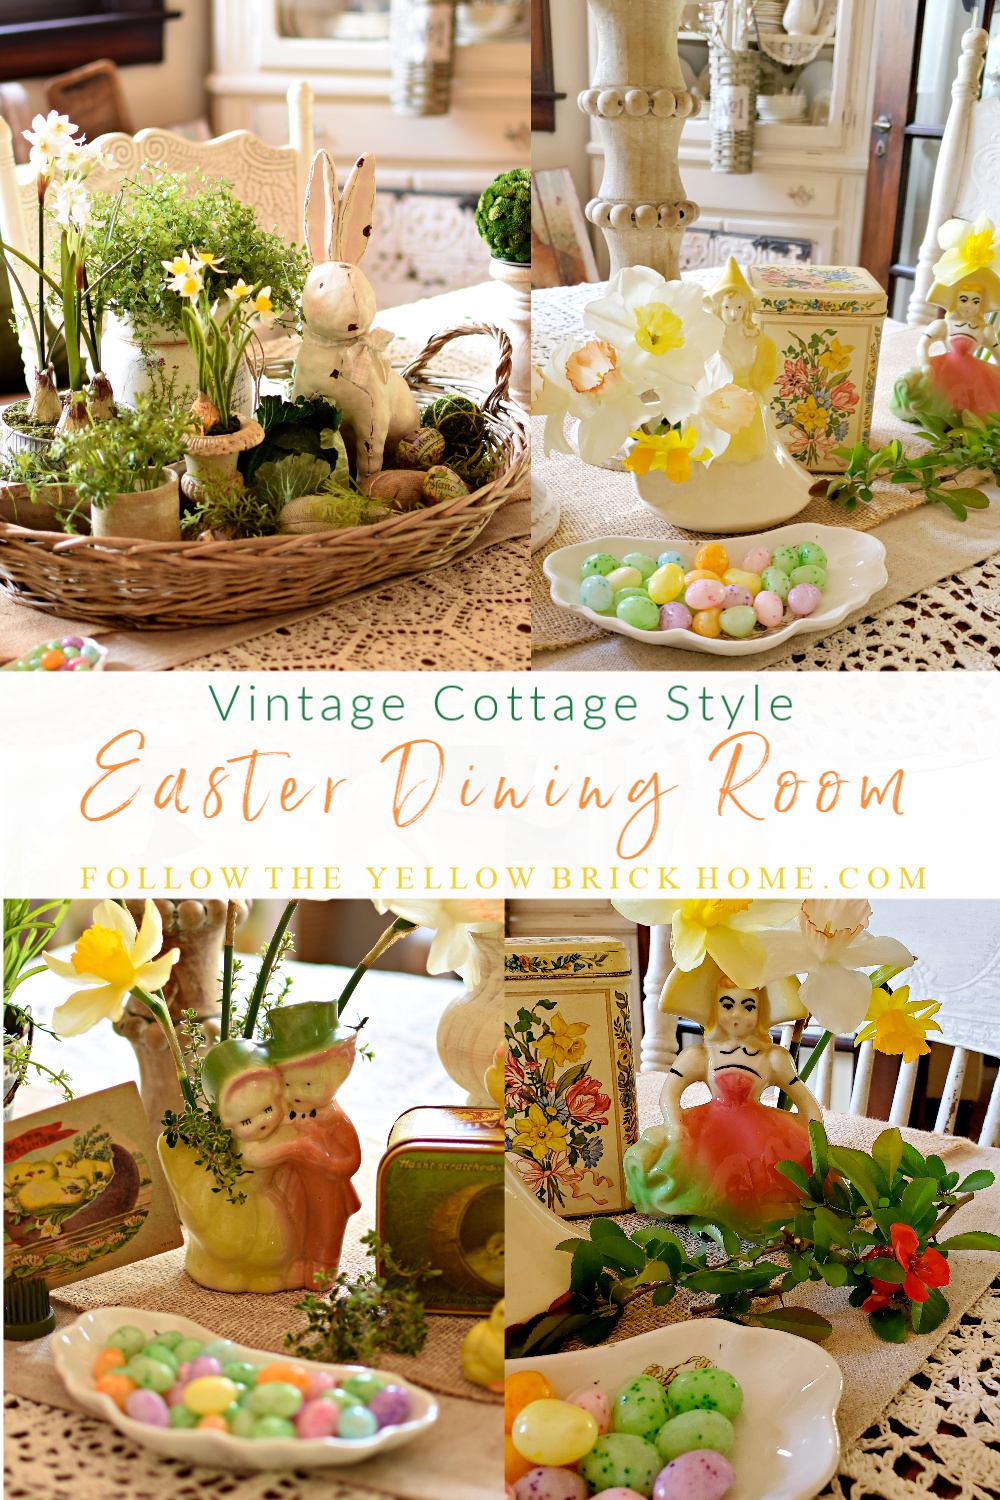 Vintage Cottage Style Easter Decor Vintage planters